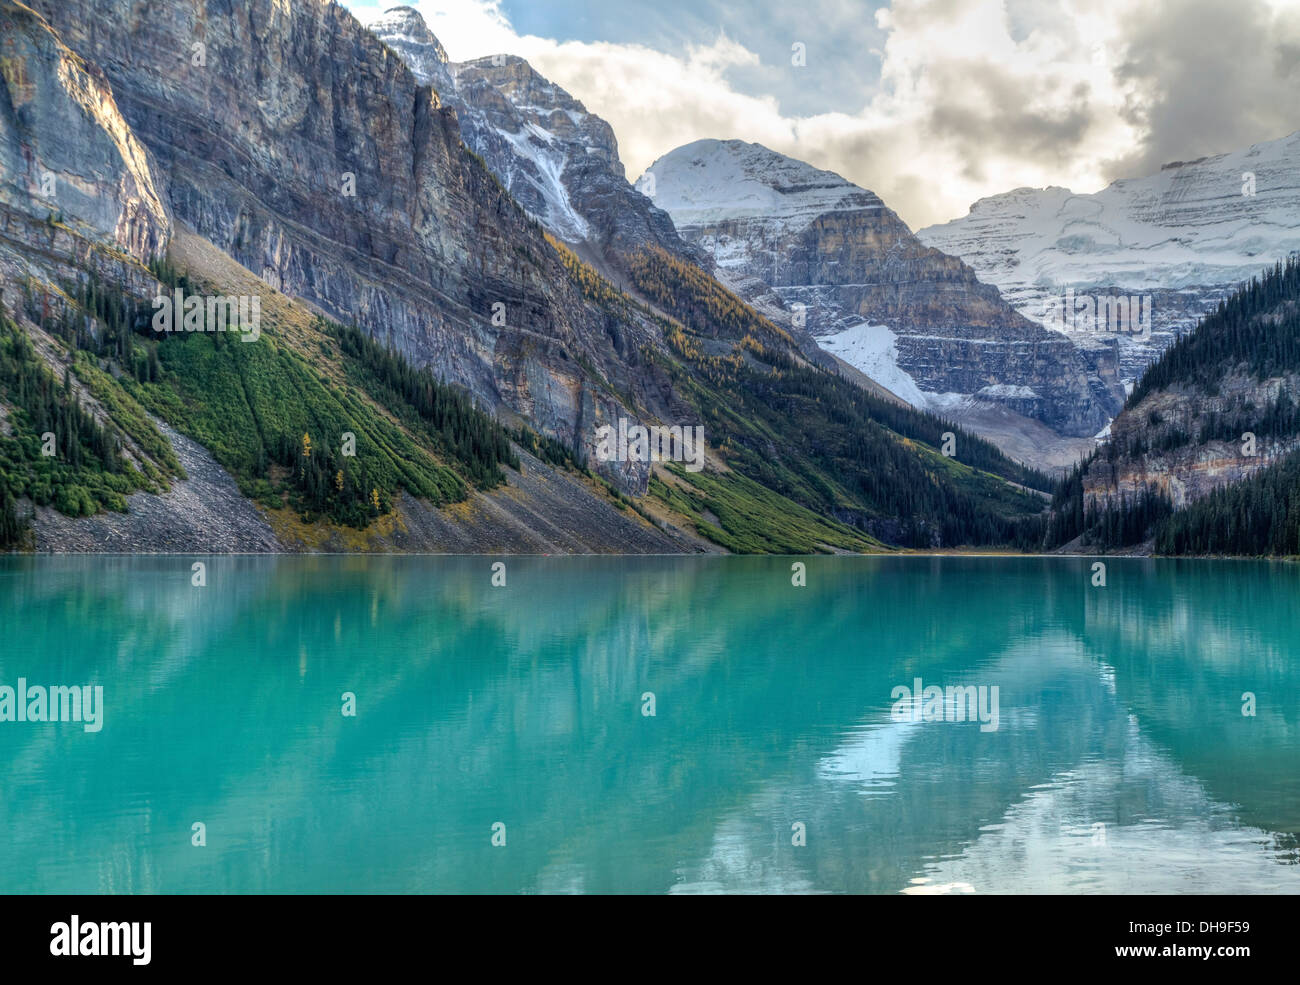 Mountains and glaciers reflected in the idyllic azure glacial waters of Lake Louise, Alberta, Canada Stock Photo